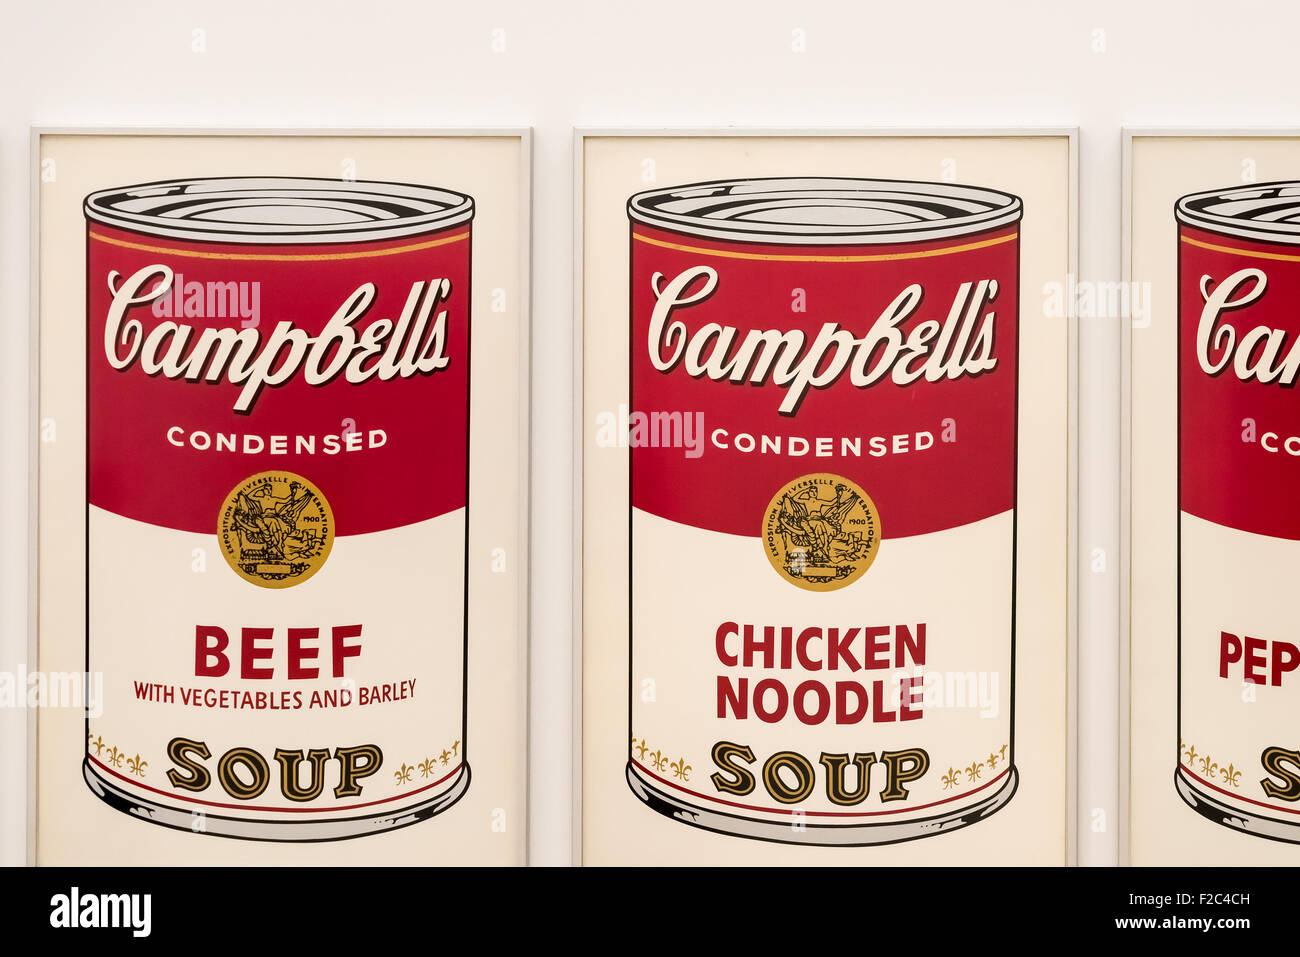 Andy Warhol Chicken Noodle Soup